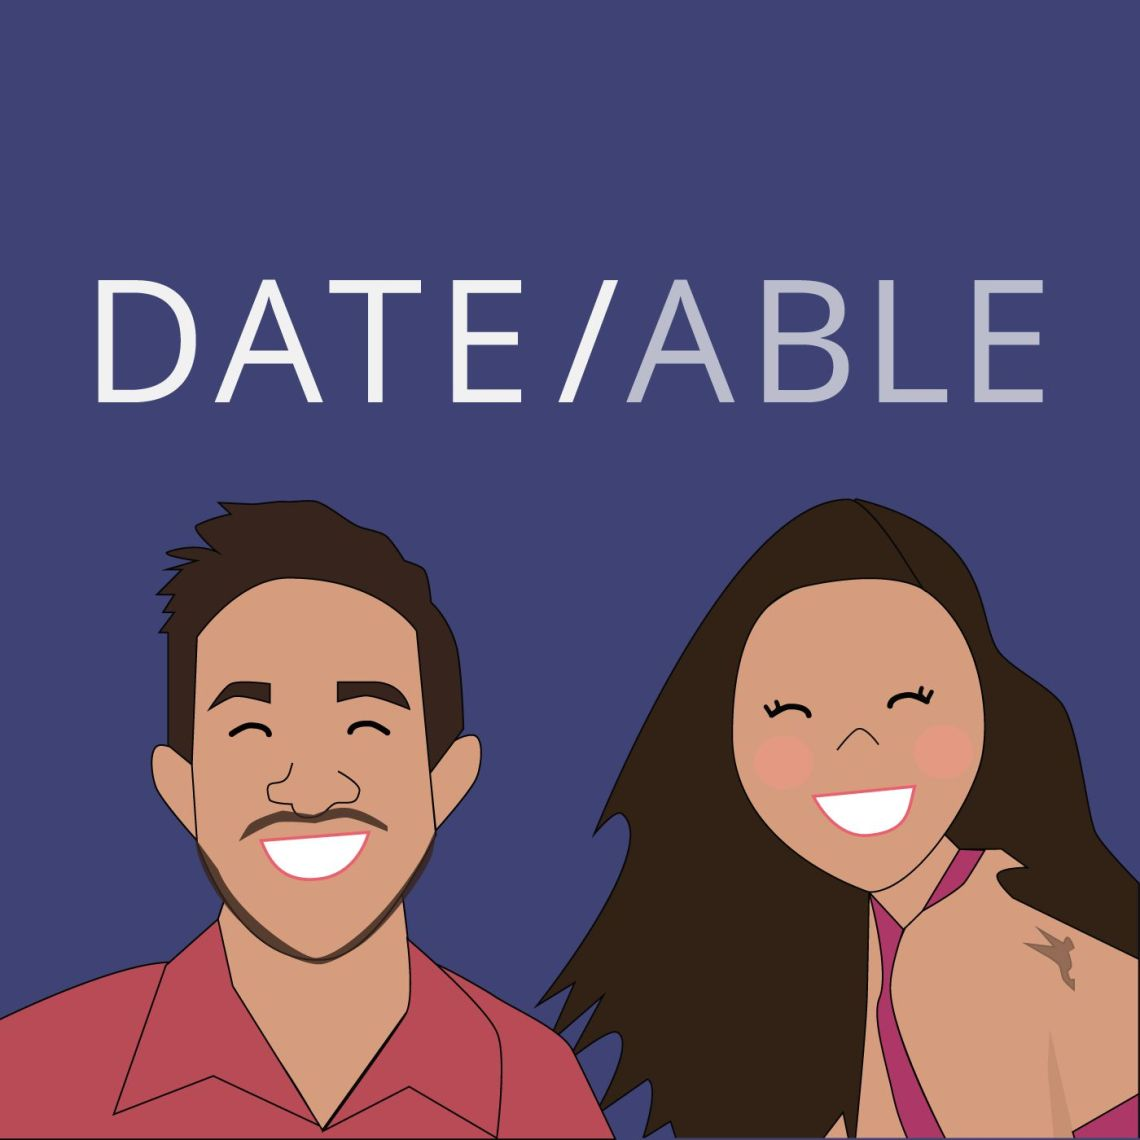 Date/Able